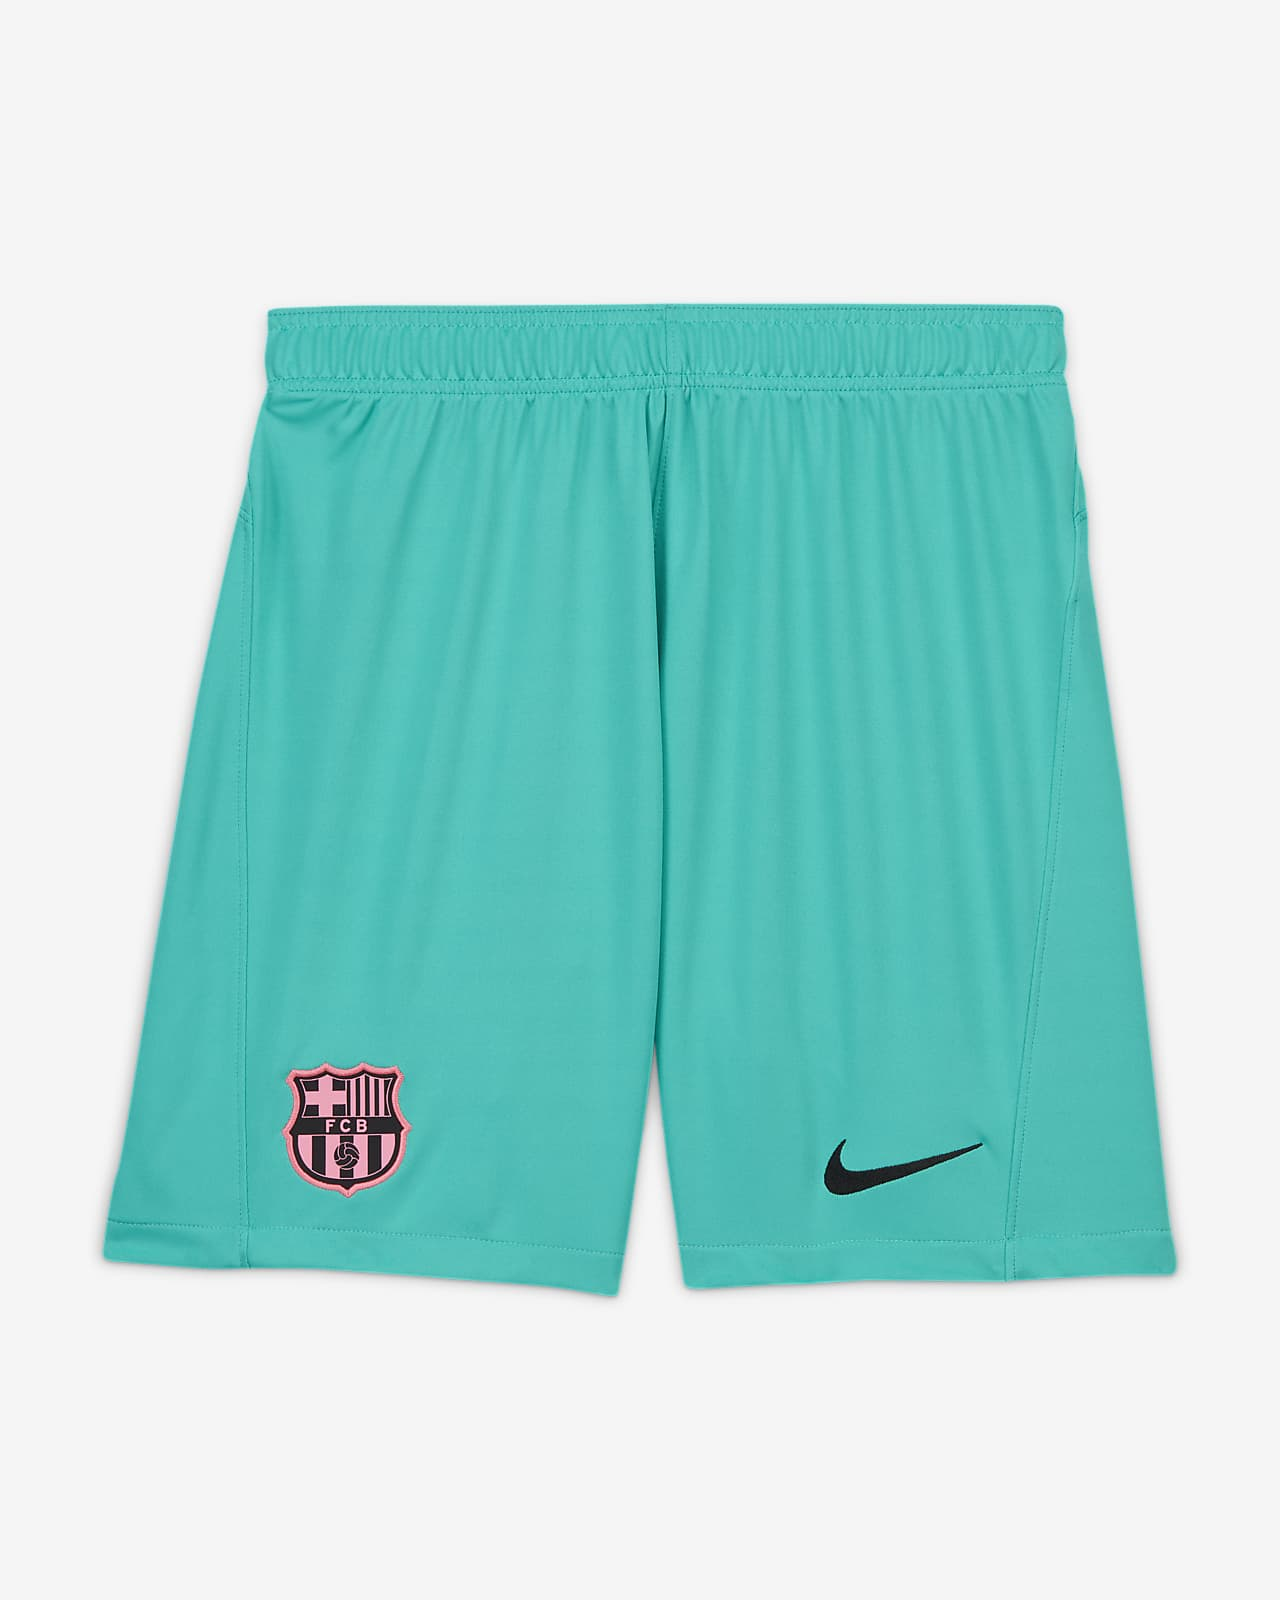 F.C. Barcelona 2020/21 Stadium Third Men's Football Shorts